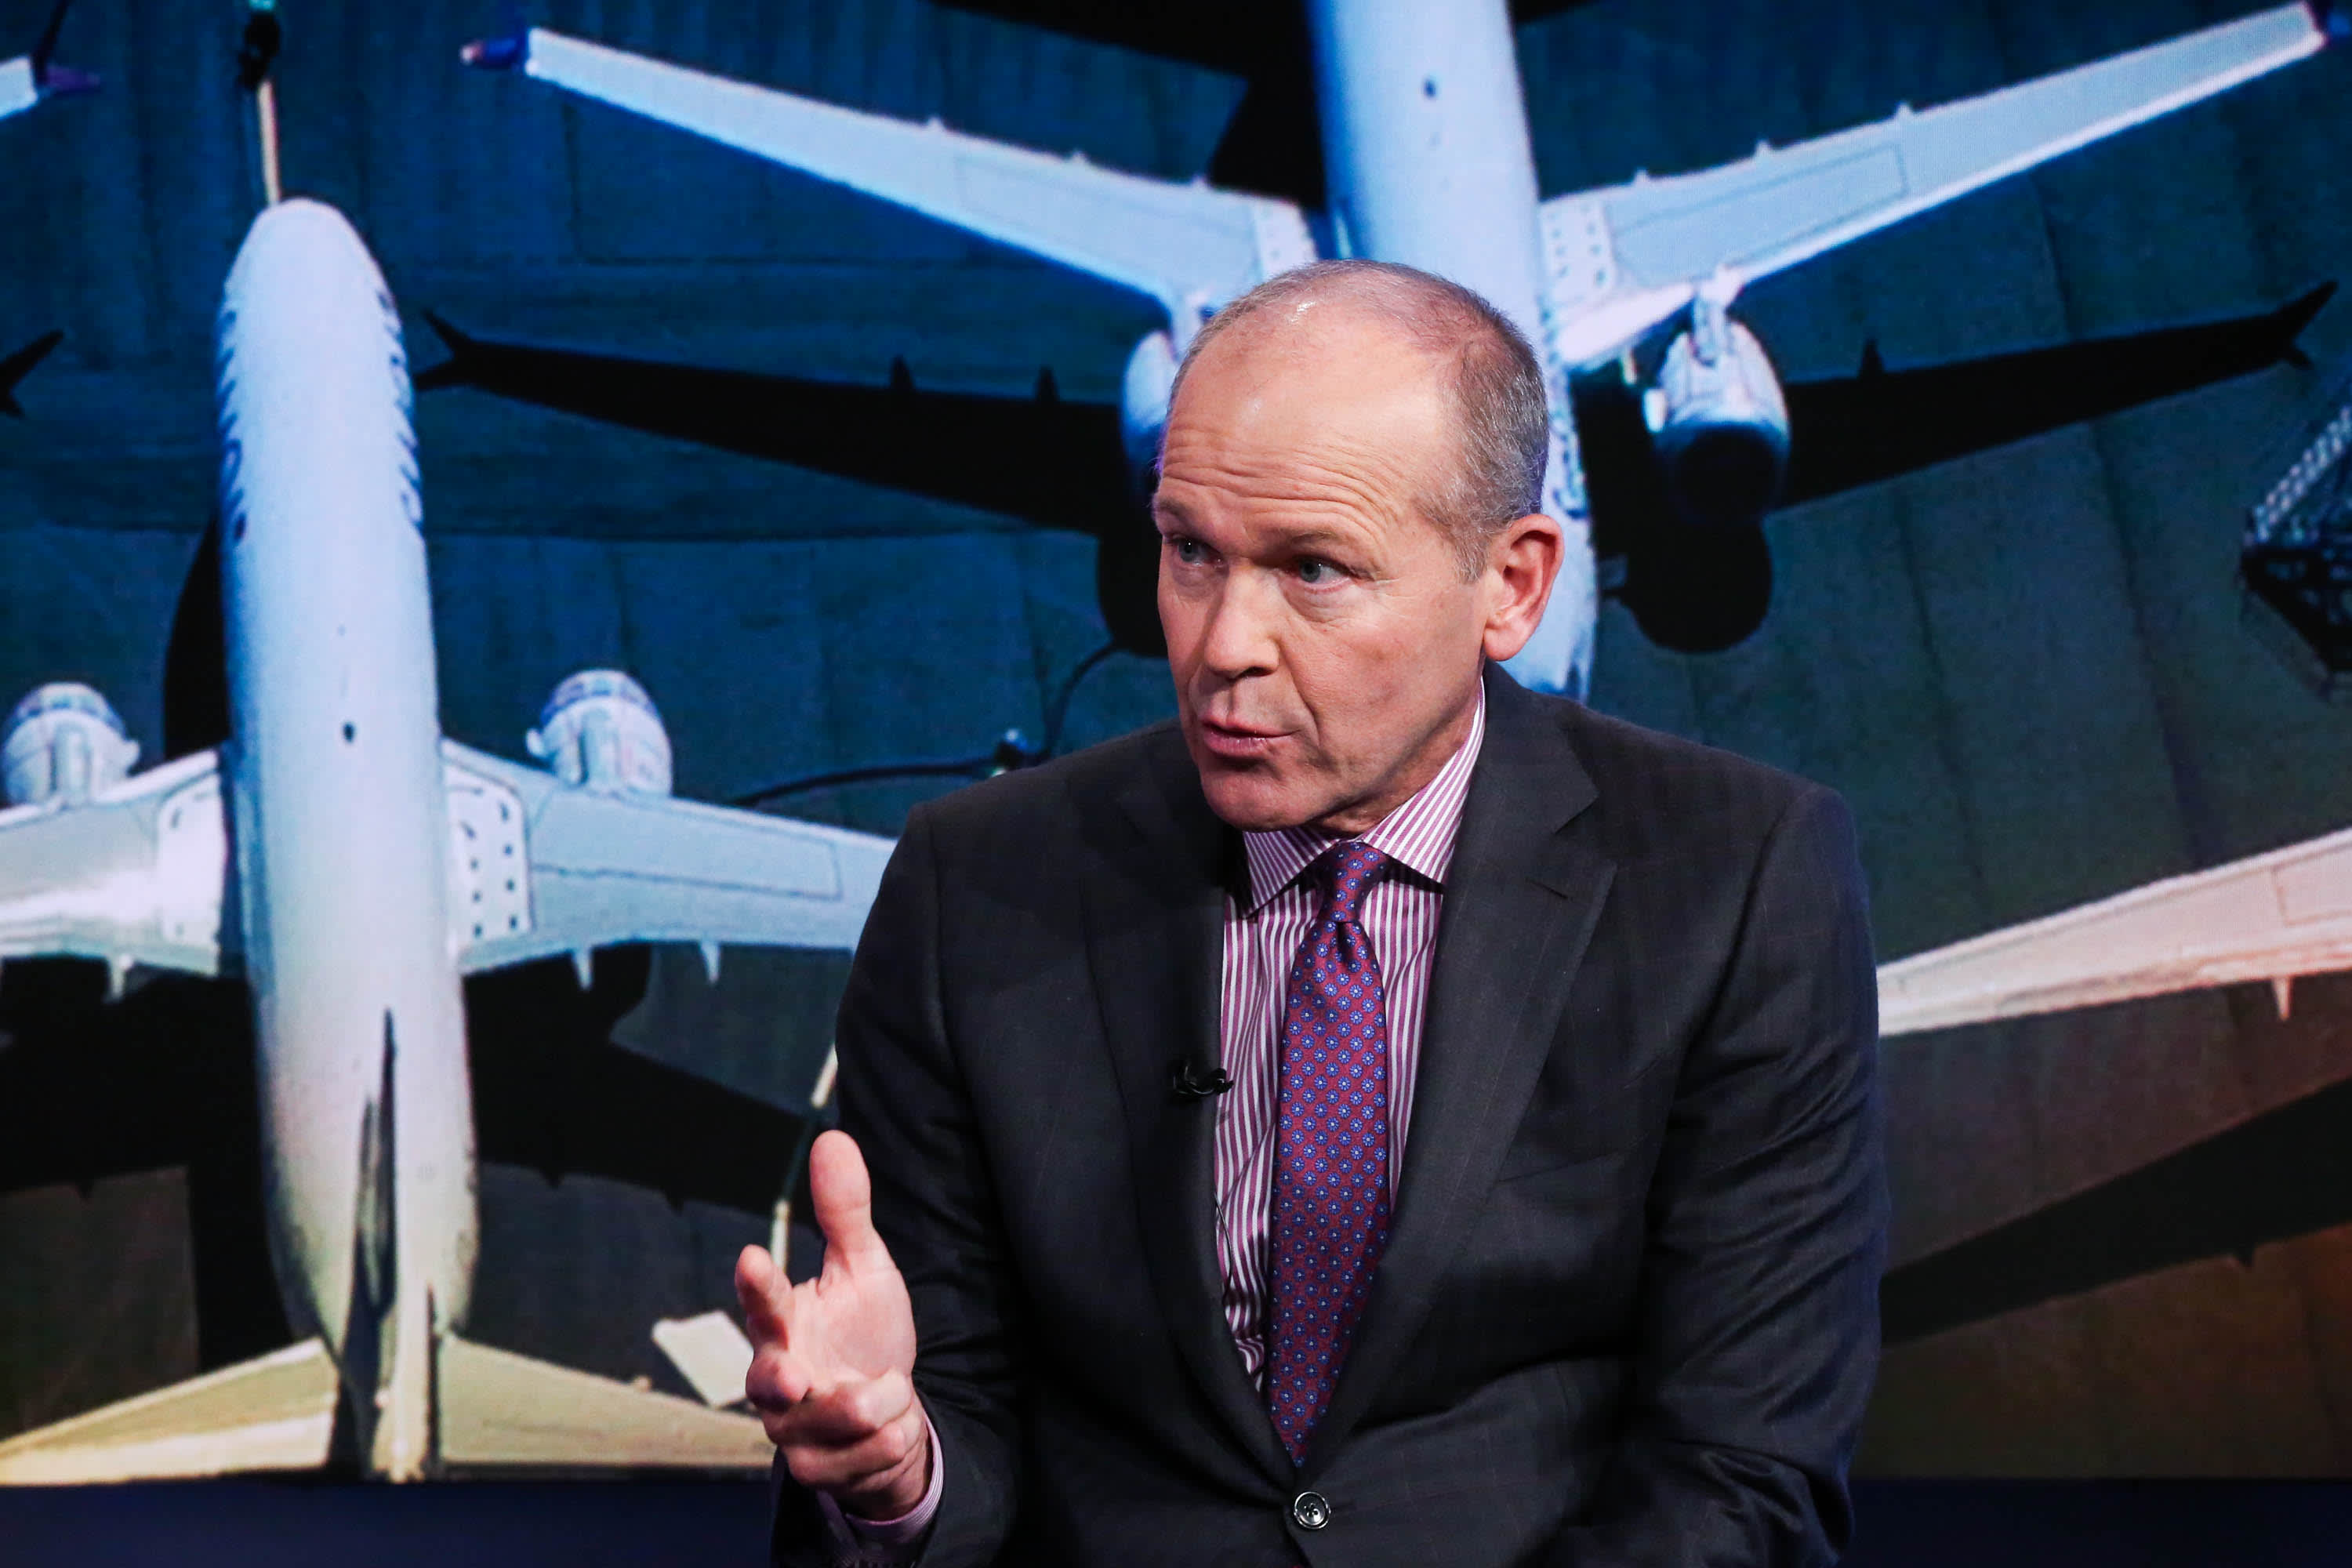 Boeing CEO sees passenger levels under 25% in September, pain for airlines